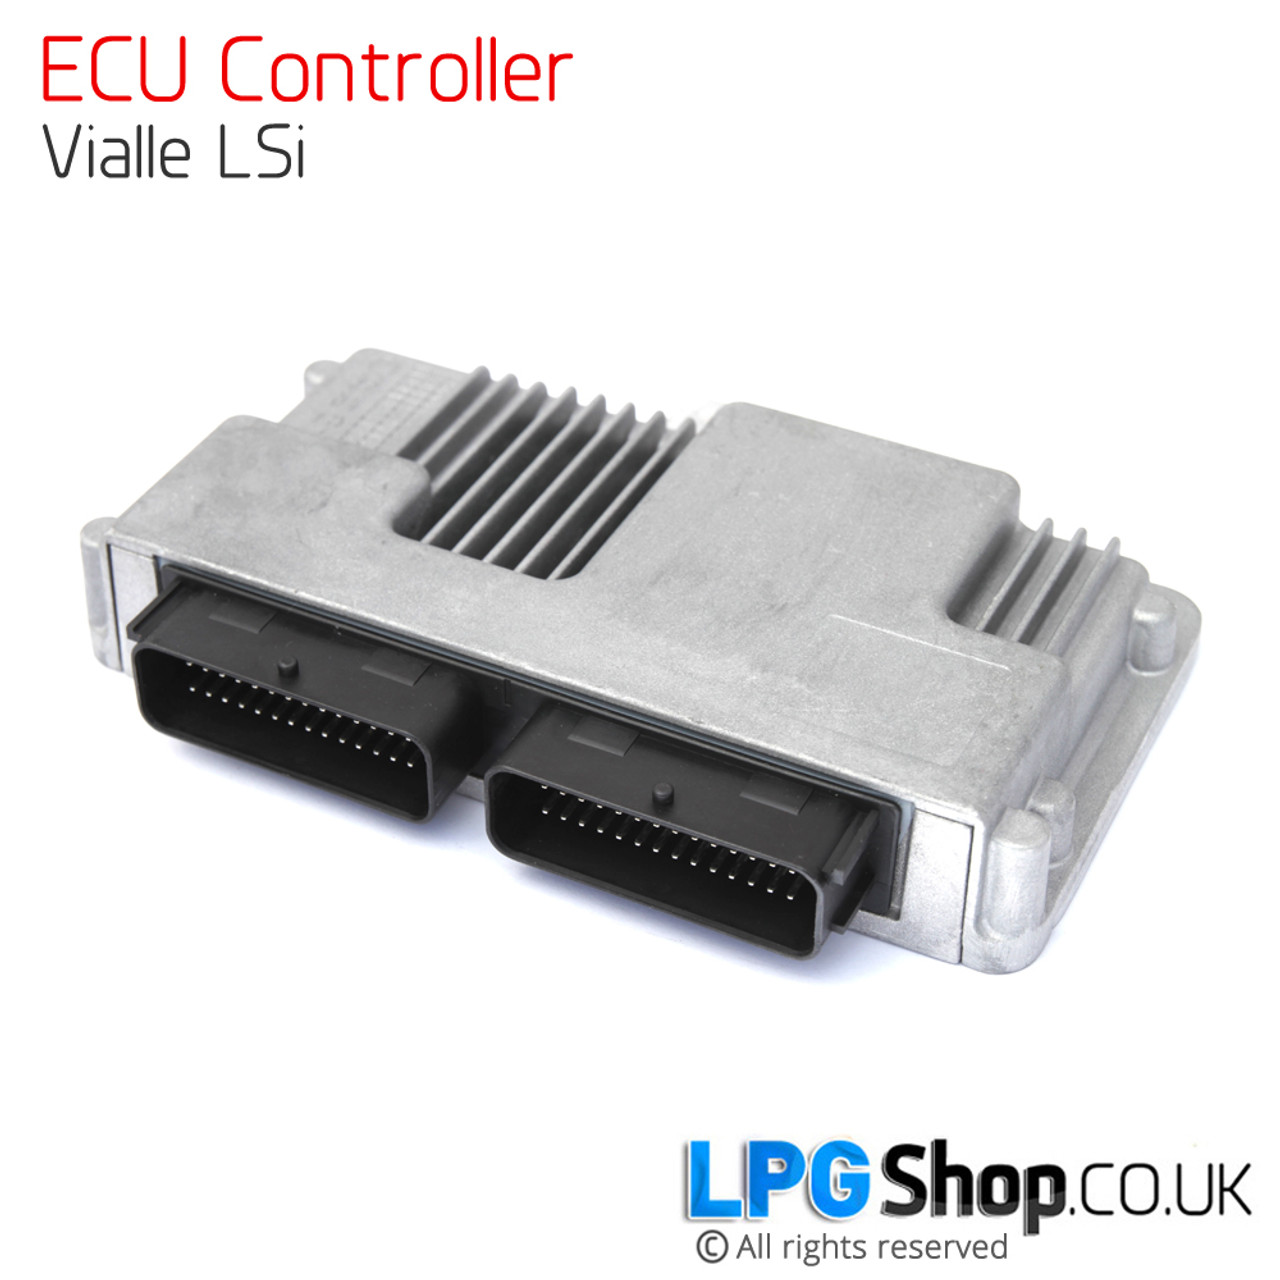 hight resolution of  vialle lsi ecu controller liquid lpg autogas sequential injection